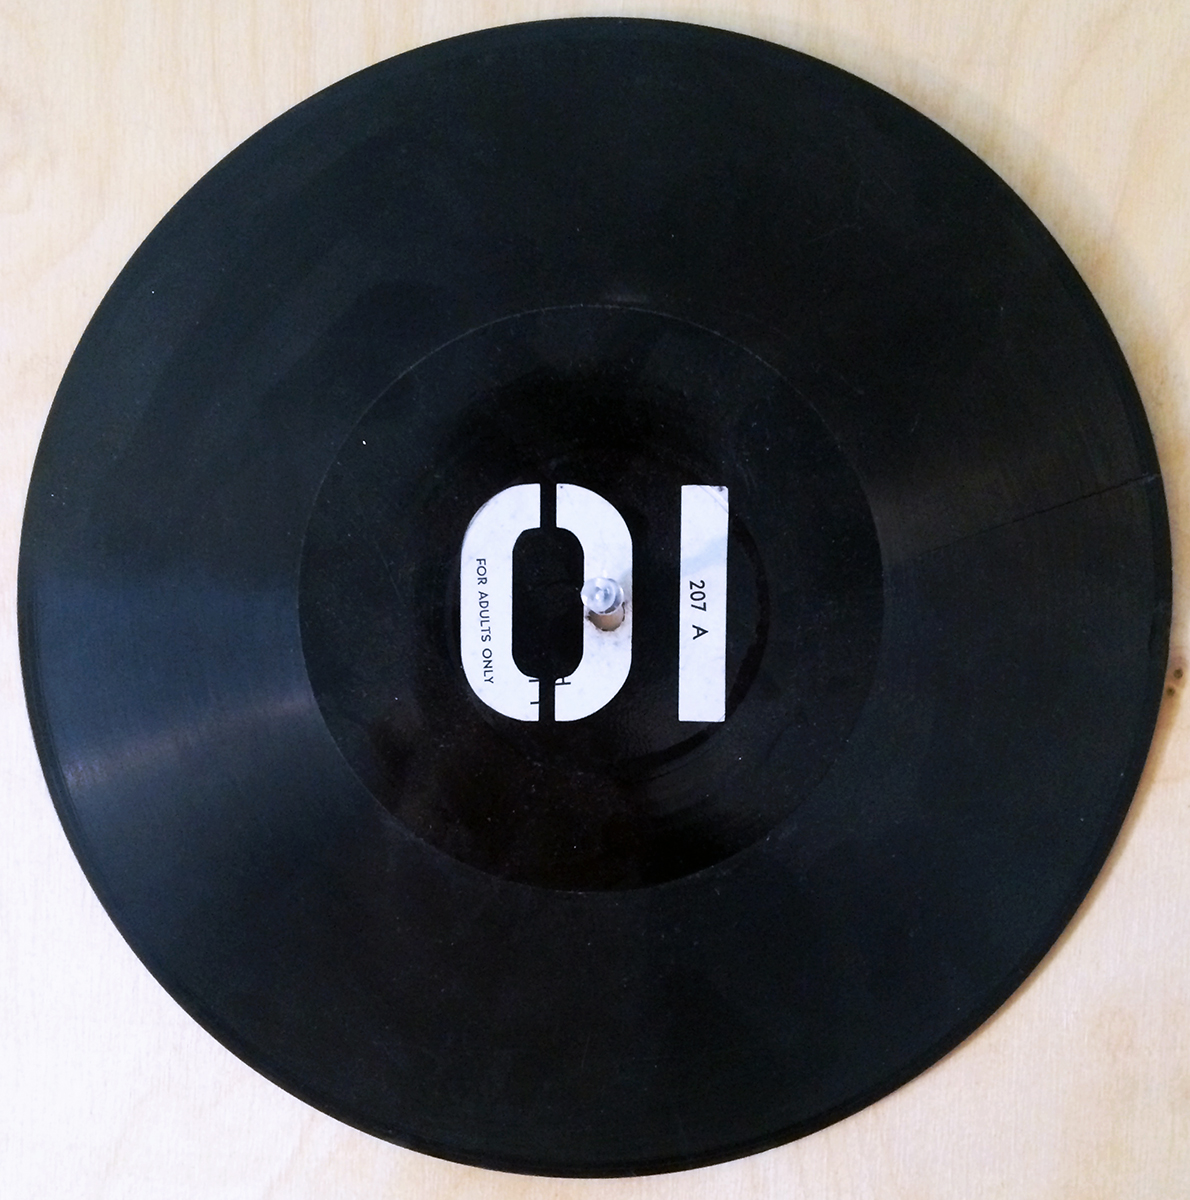 """Black 01 Vinyl"" Adhesive Vinyl on Vinyl Record 9.75"" in diameter 2001 $450  One of the Vinyl on Vinyl series produced for Heartless01, ""Black 01 Vinyl"" picked up a crack somewhere along the way. These discs referenced the amazing music recorded for our collective 01 projects in Nashville. In installations, the 01 vinyls operated visually in tandem with the environmental vinyl 01 sticker grids and other applications on objects (e.g., monitors, canvas, books, etc.) to dissolve encompassing architecture and produce new ontology for the elements in our 4D arrays, both virtual and analog, in new and traditional media."